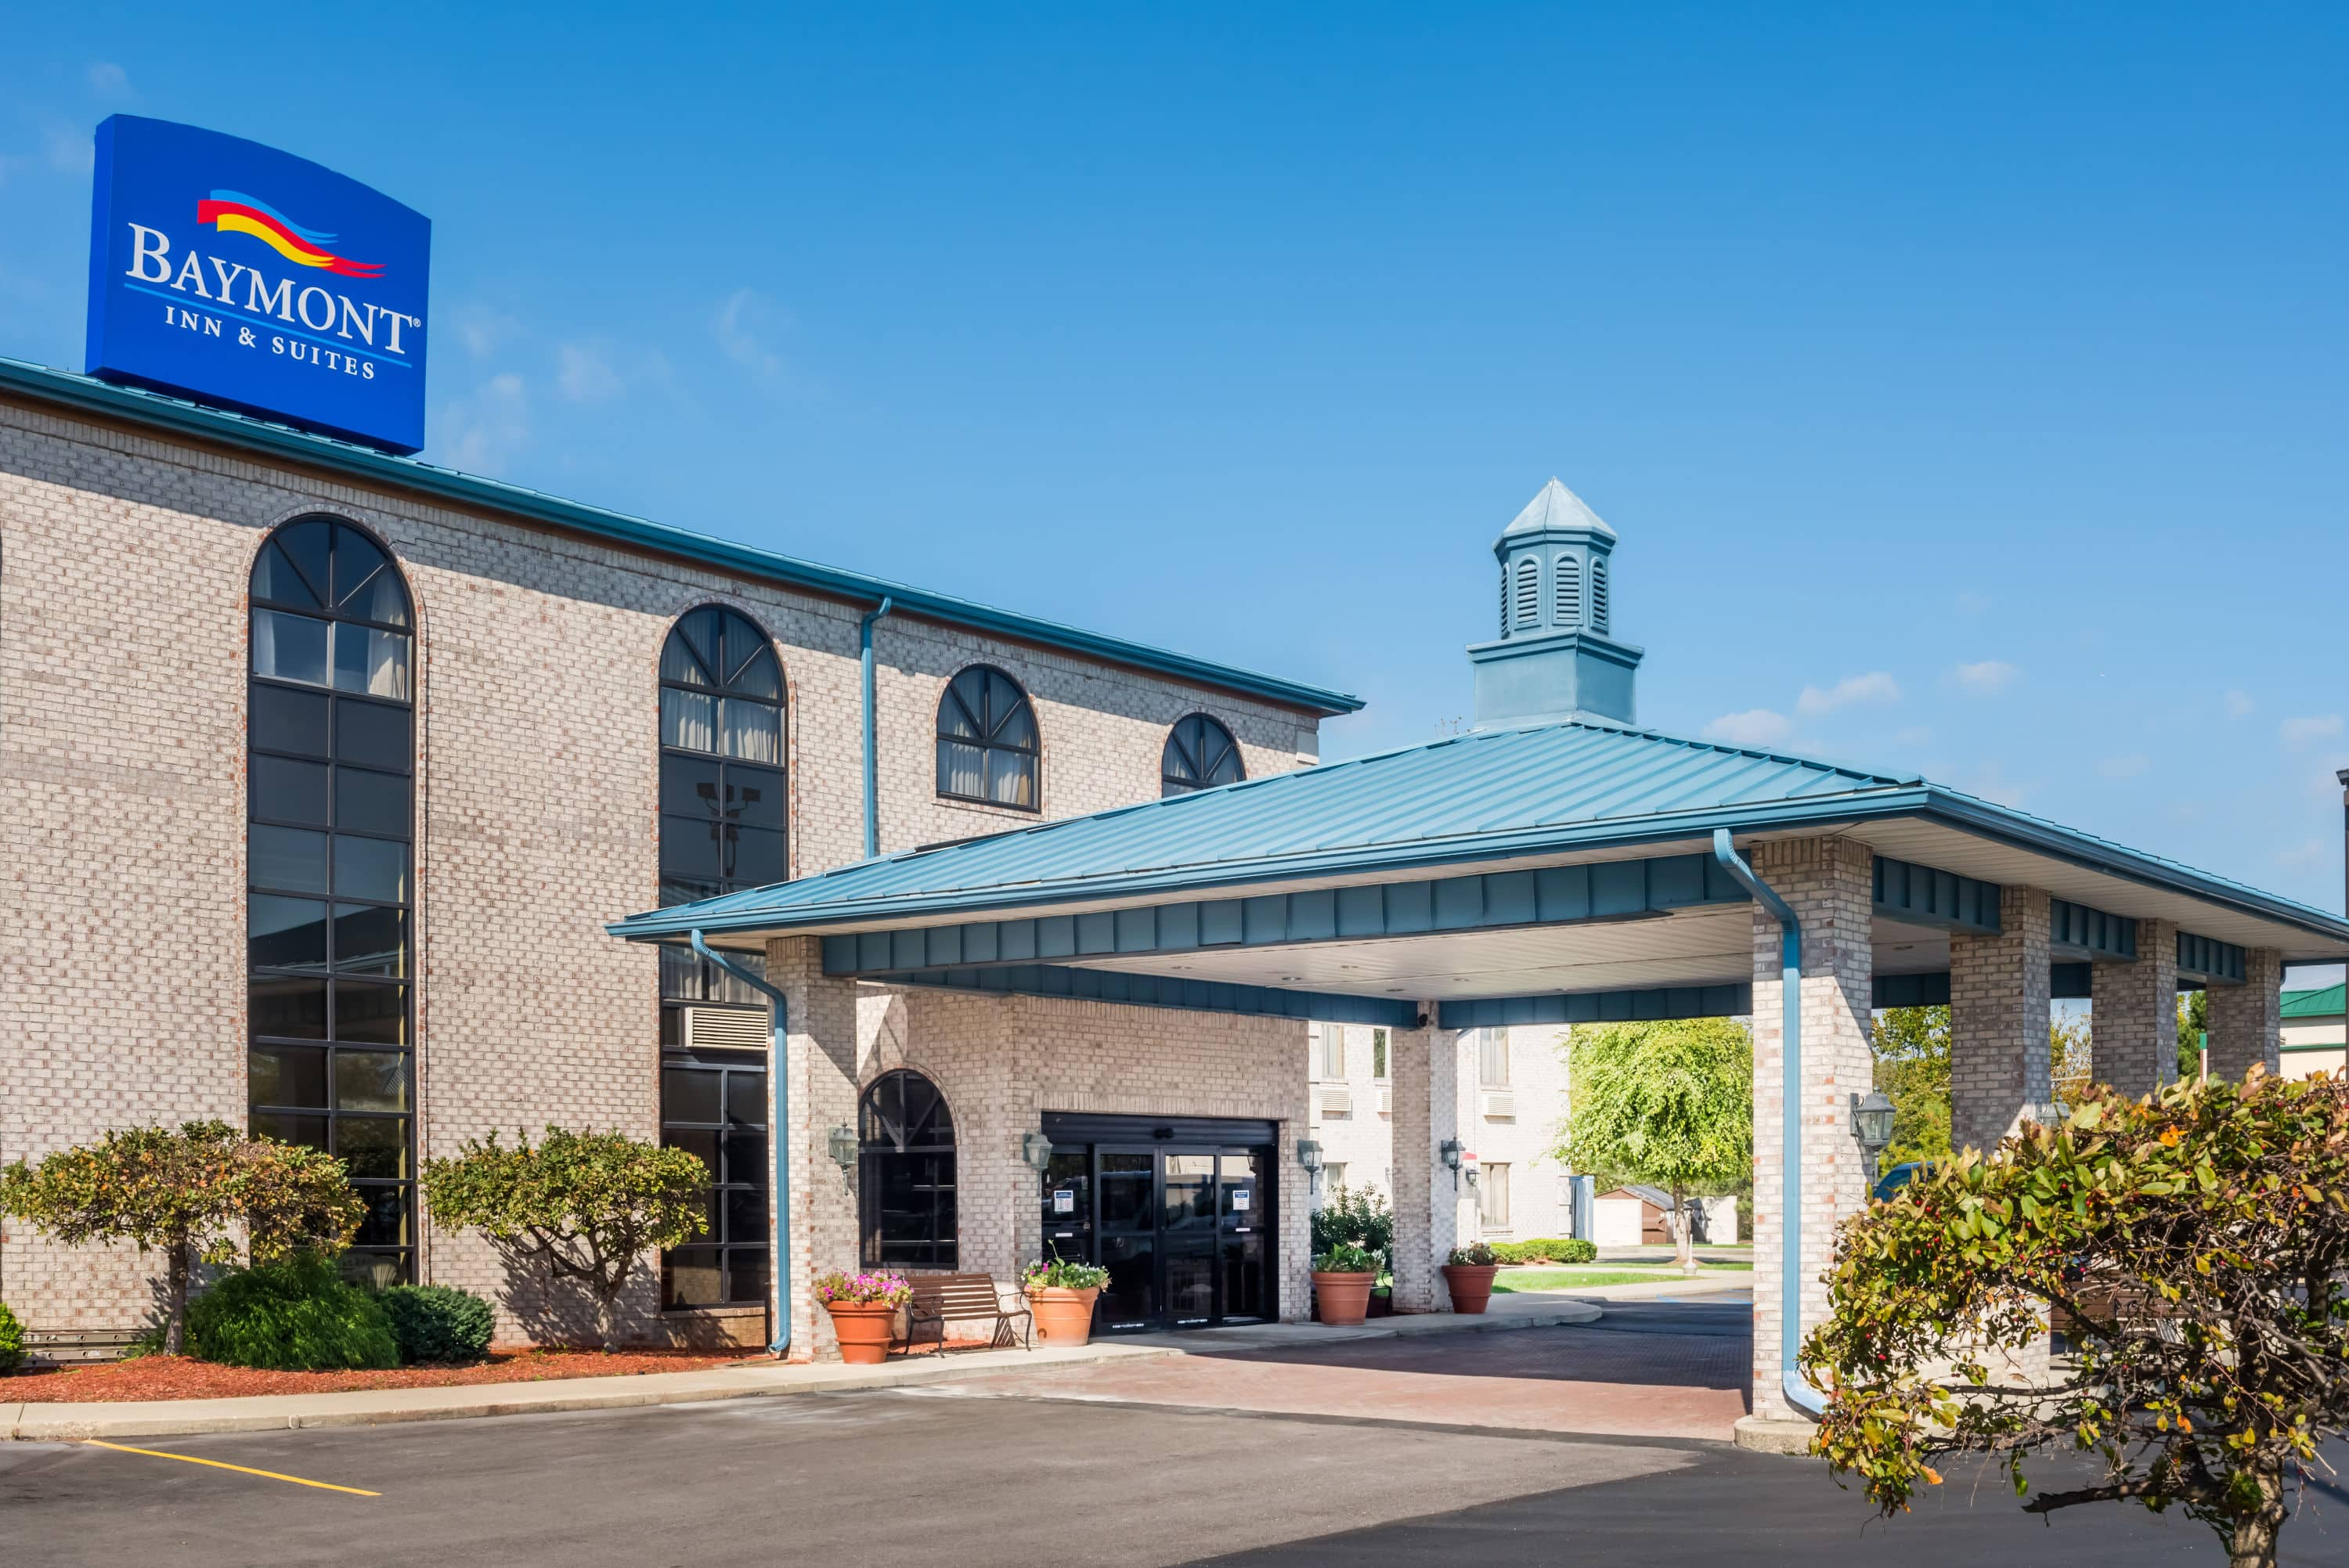 Baymont Inn U Suites Plainfield Arpt Area In Brownsburg Indiana With Hotels Near